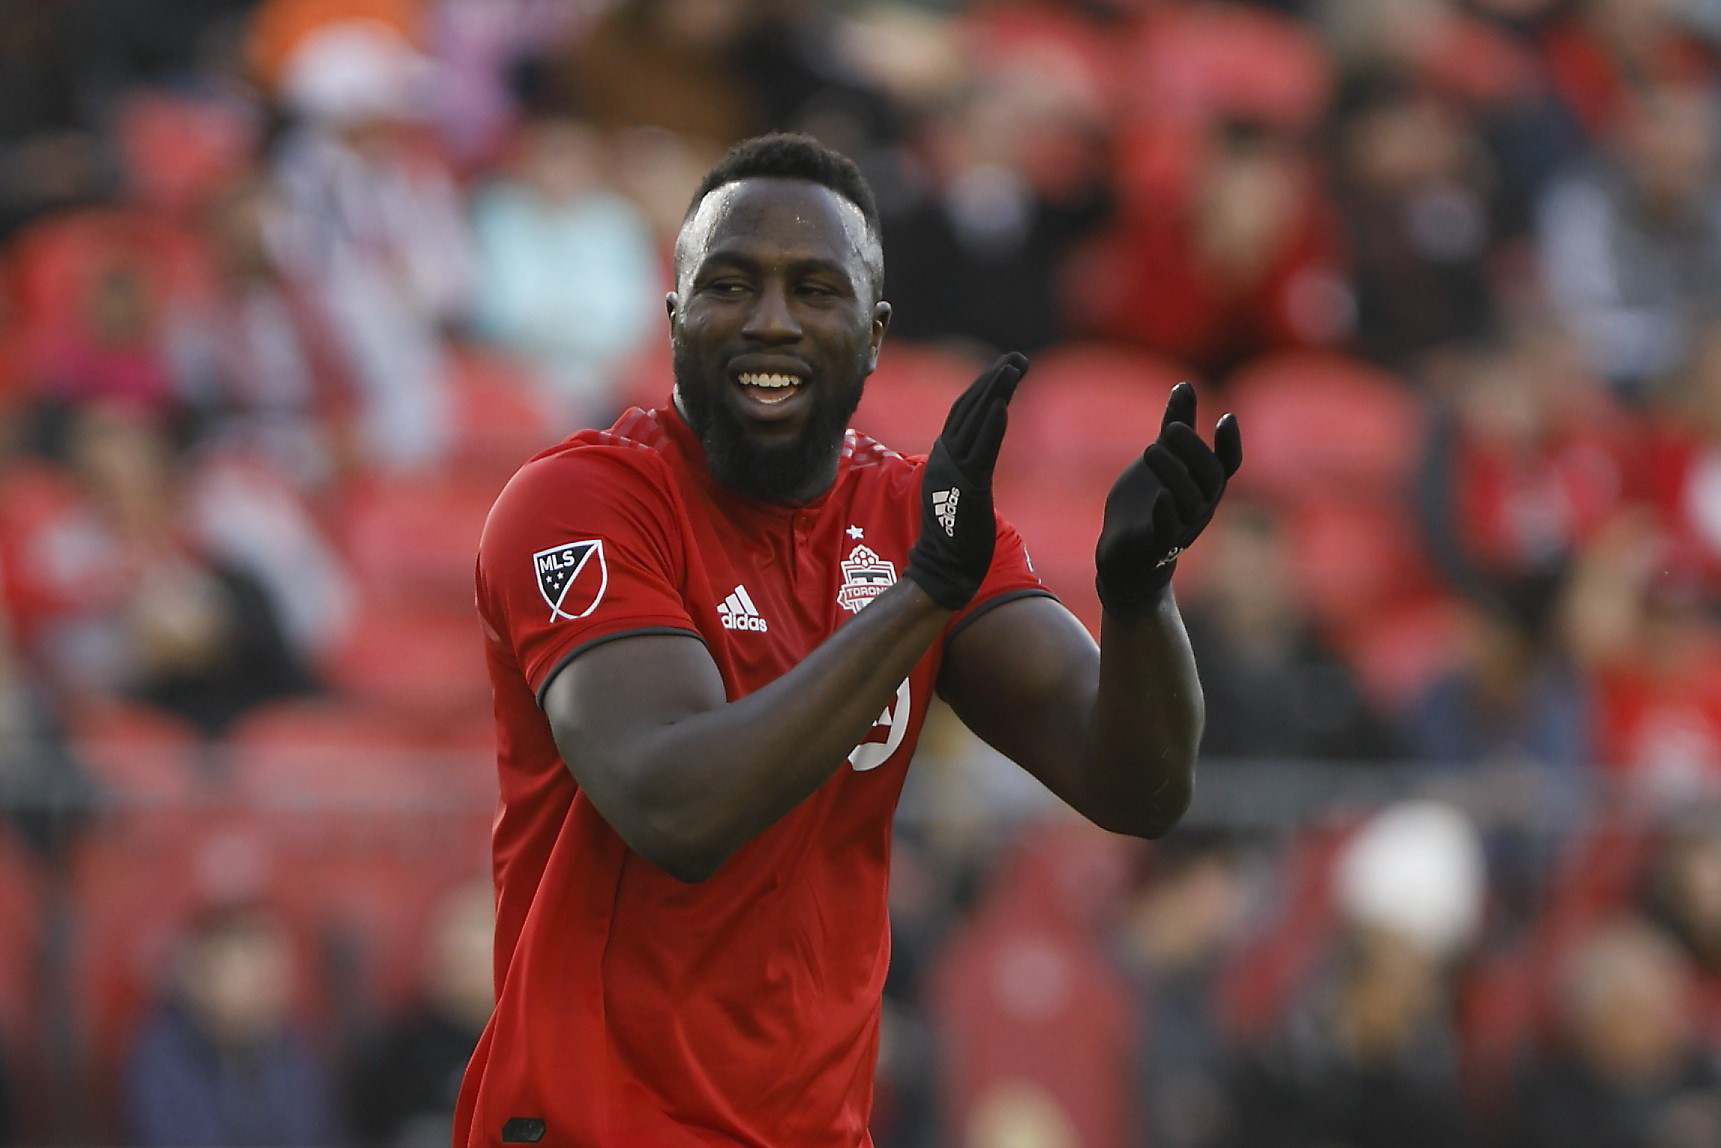 Toronto FC falls to Seattle Sounders in MLS Cup final — NewsAlert